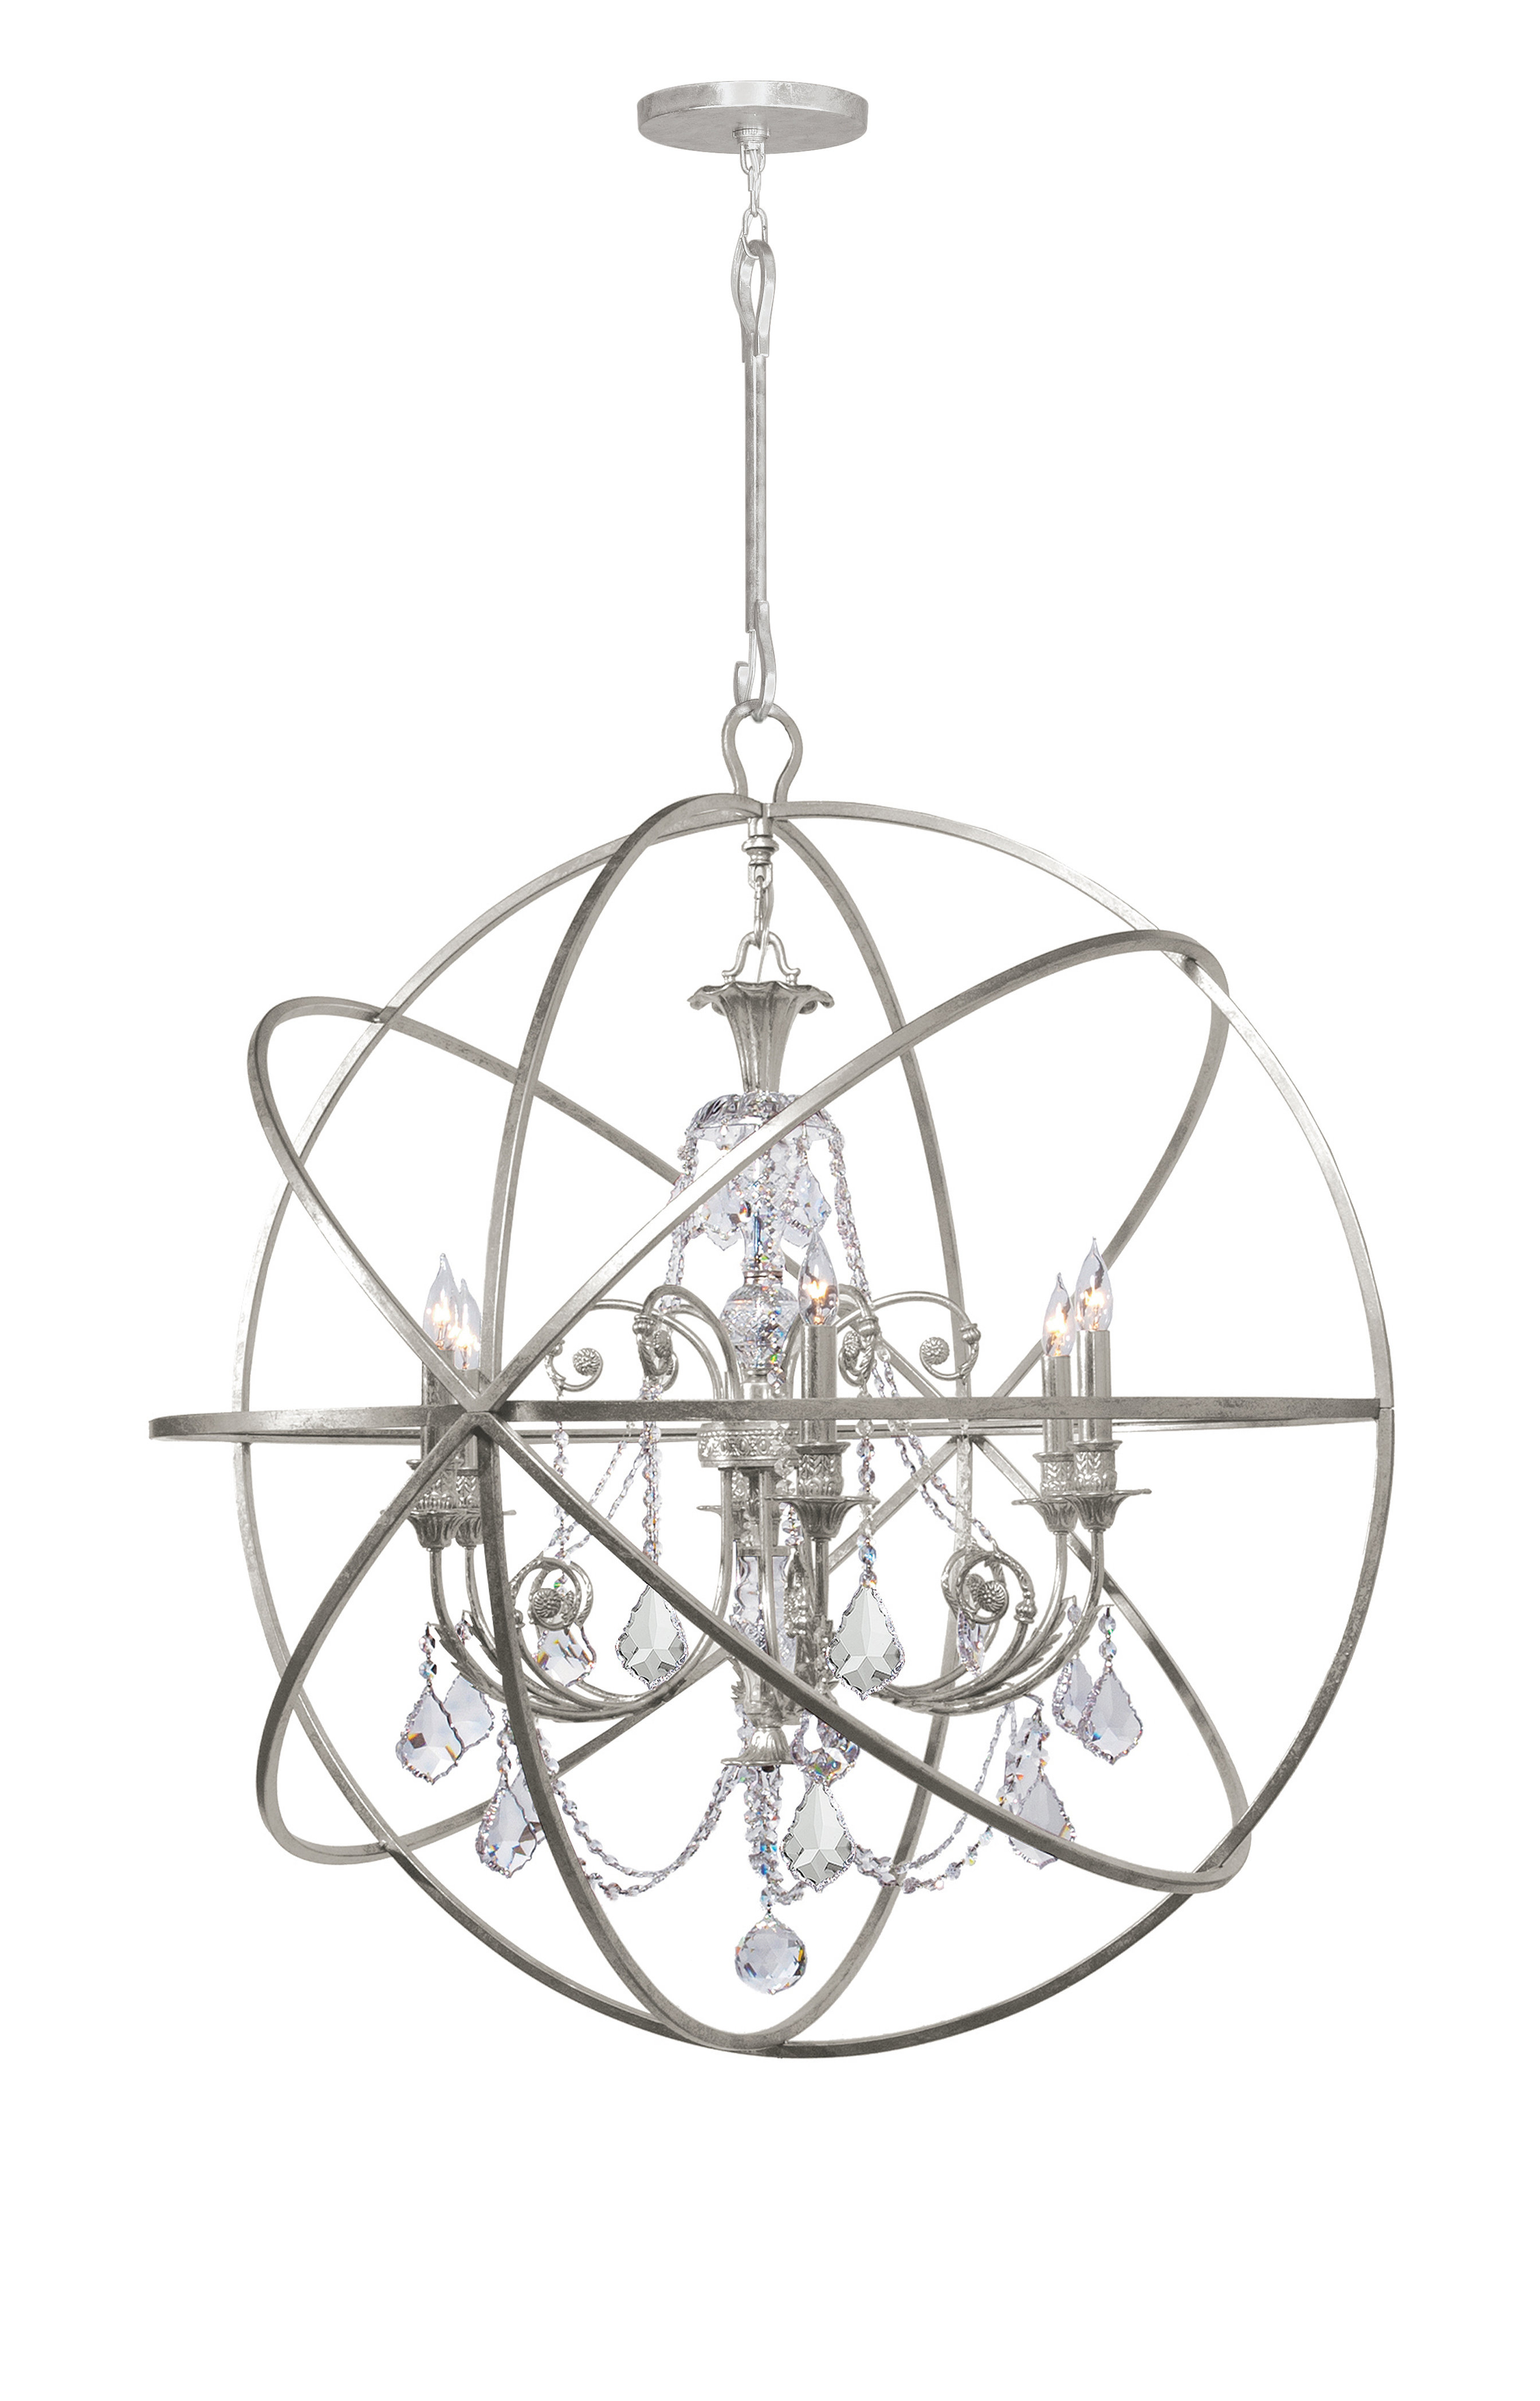 Gregoire 6 Light Globe Chandelier Intended For Gregoire 6 Light Globe Chandeliers (View 5 of 30)